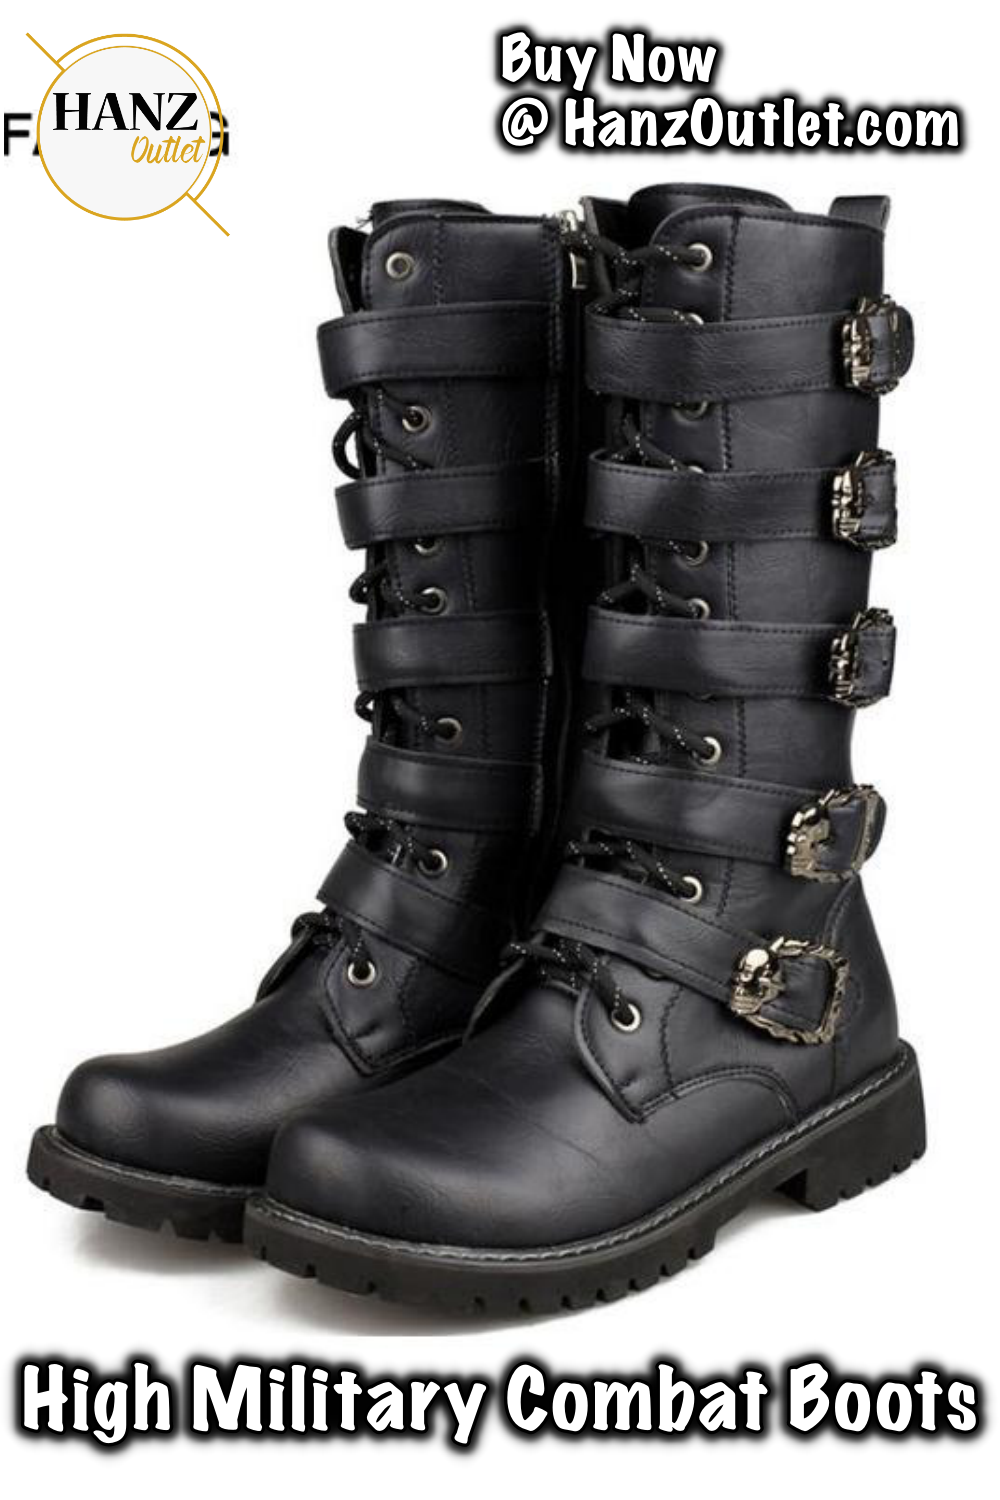 46a91915e910 Men Army Boots High Military Combat Boots Metal Buckle Punk Mid-calf Male  Motorcycle Boots Lace Up Men s Shoes Rock  MenArmyBoots  ArmyBoots ...